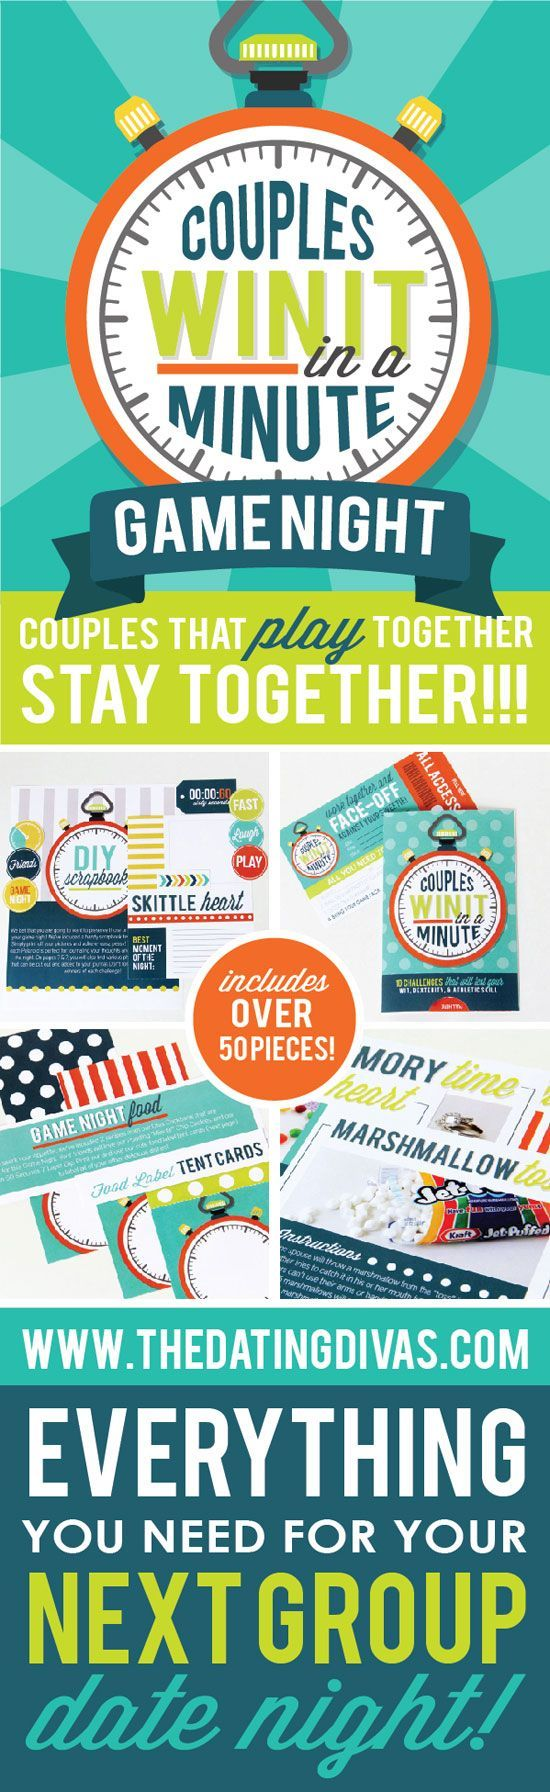 Love this couples game night idea- the date night challenges look so fun! http://www.TheDatingDivas.com